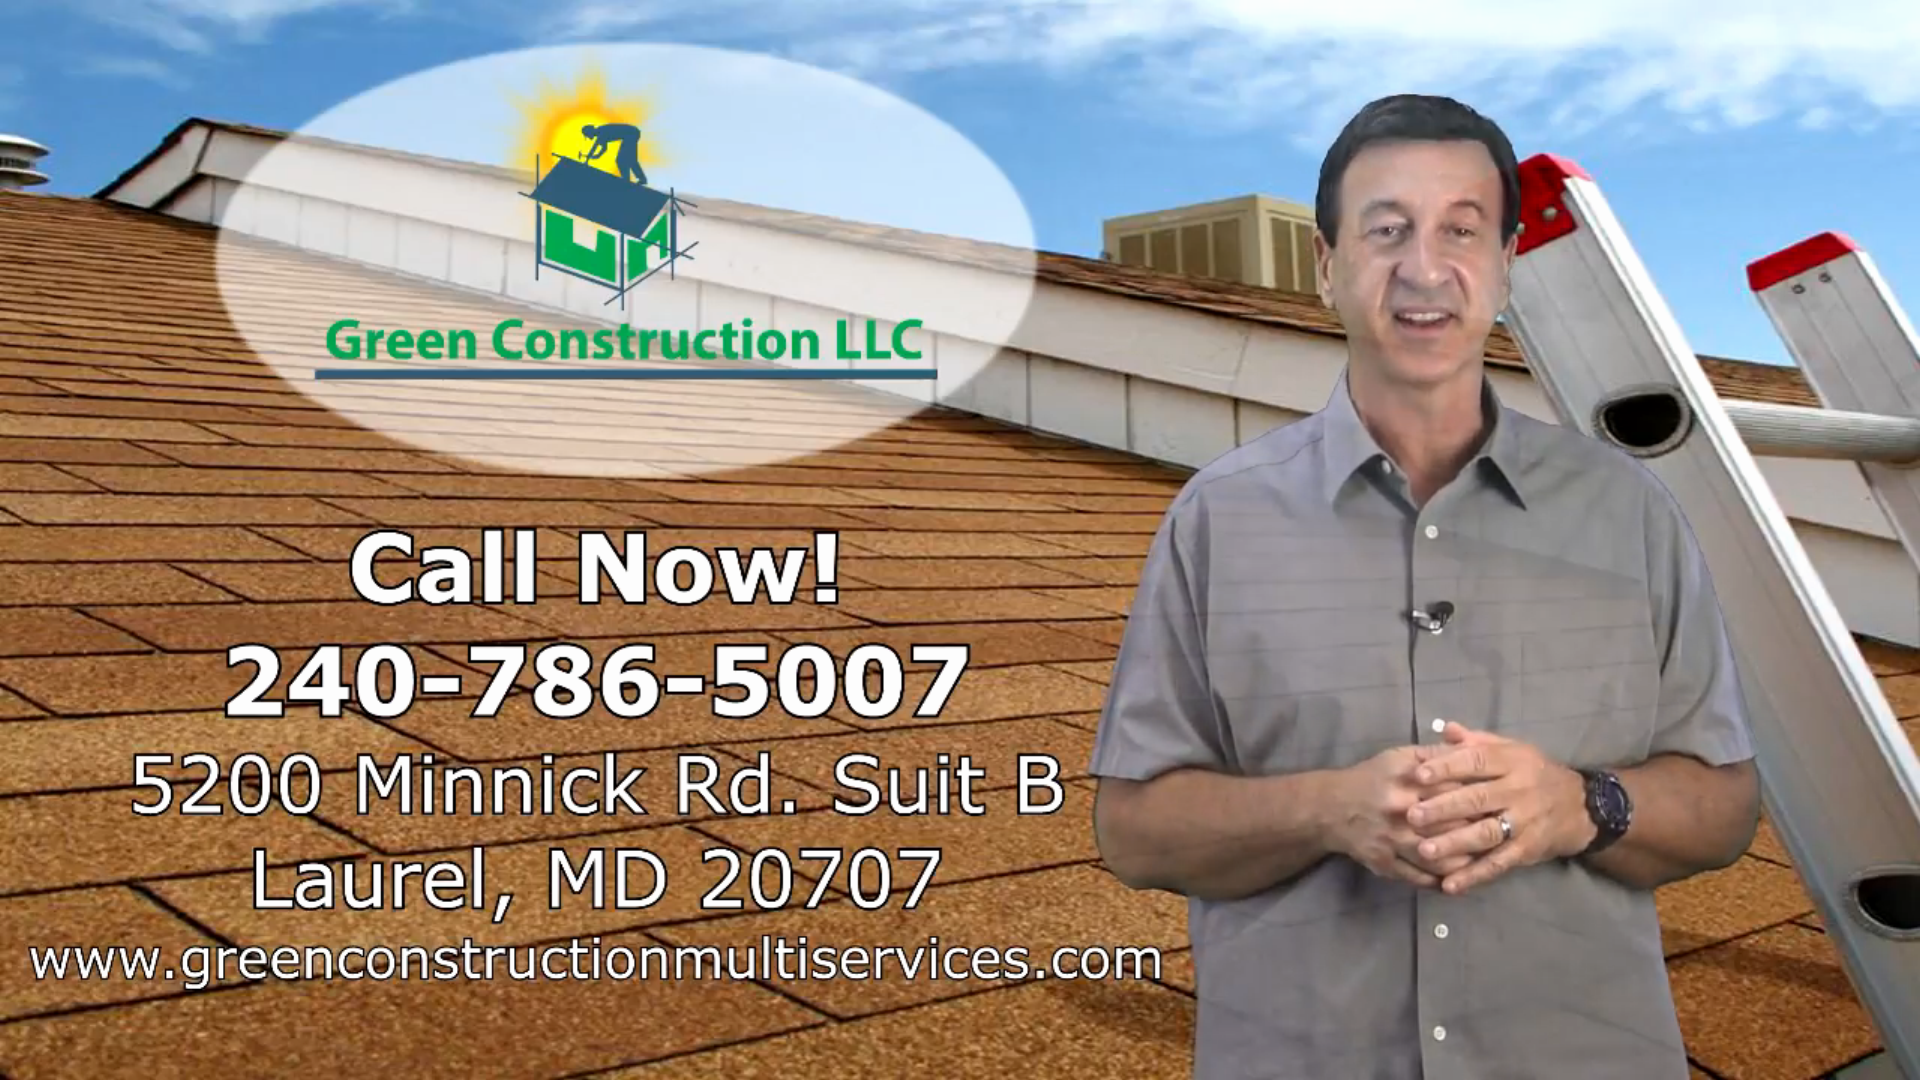 Green Construction Multi-Services LLC